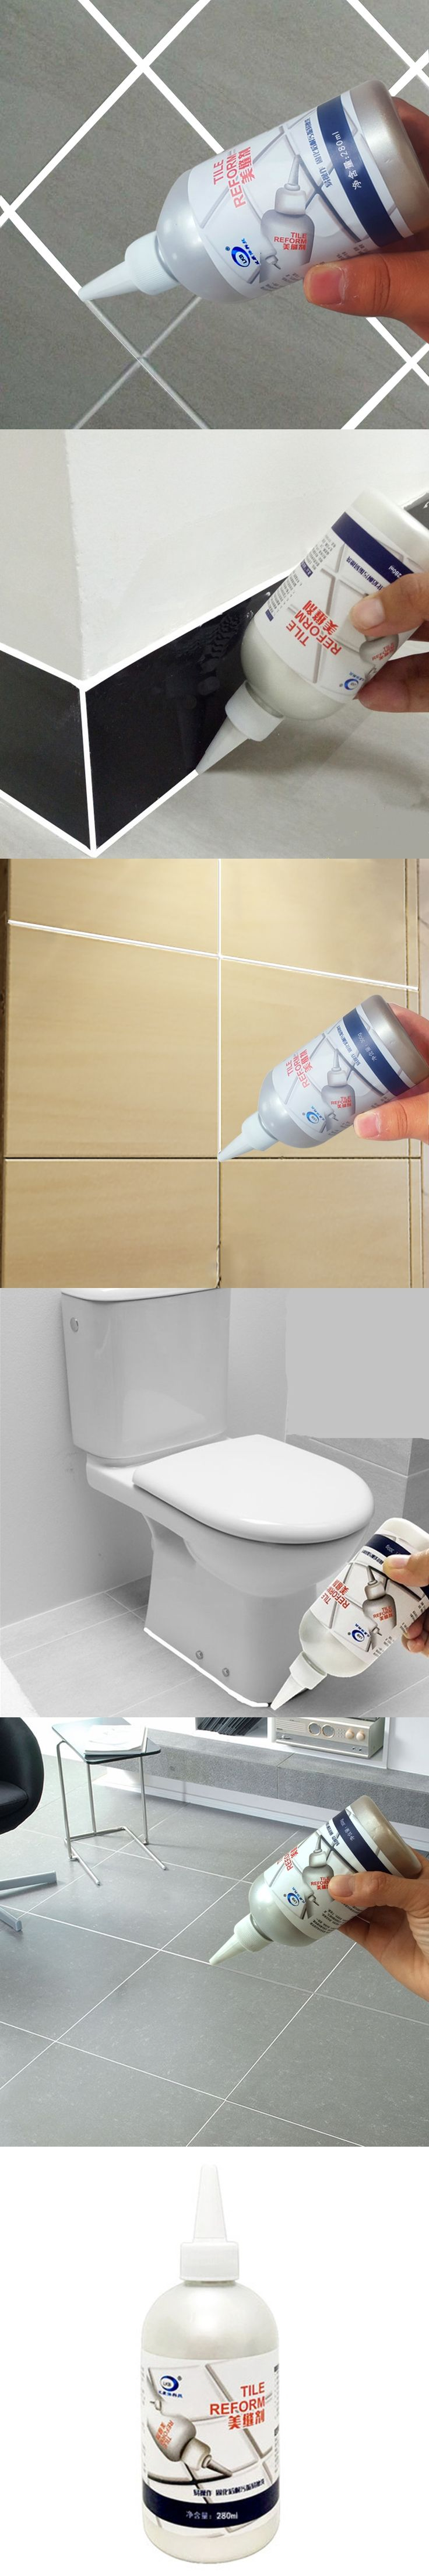 Best 25 waterproof grout ideas on pinterest cheap mosaic tiles genuine floor tiles epoxy grouts beautiful sealant 280ml white caulking agent for waterproof wall toilet gap dailygadgetfo Gallery